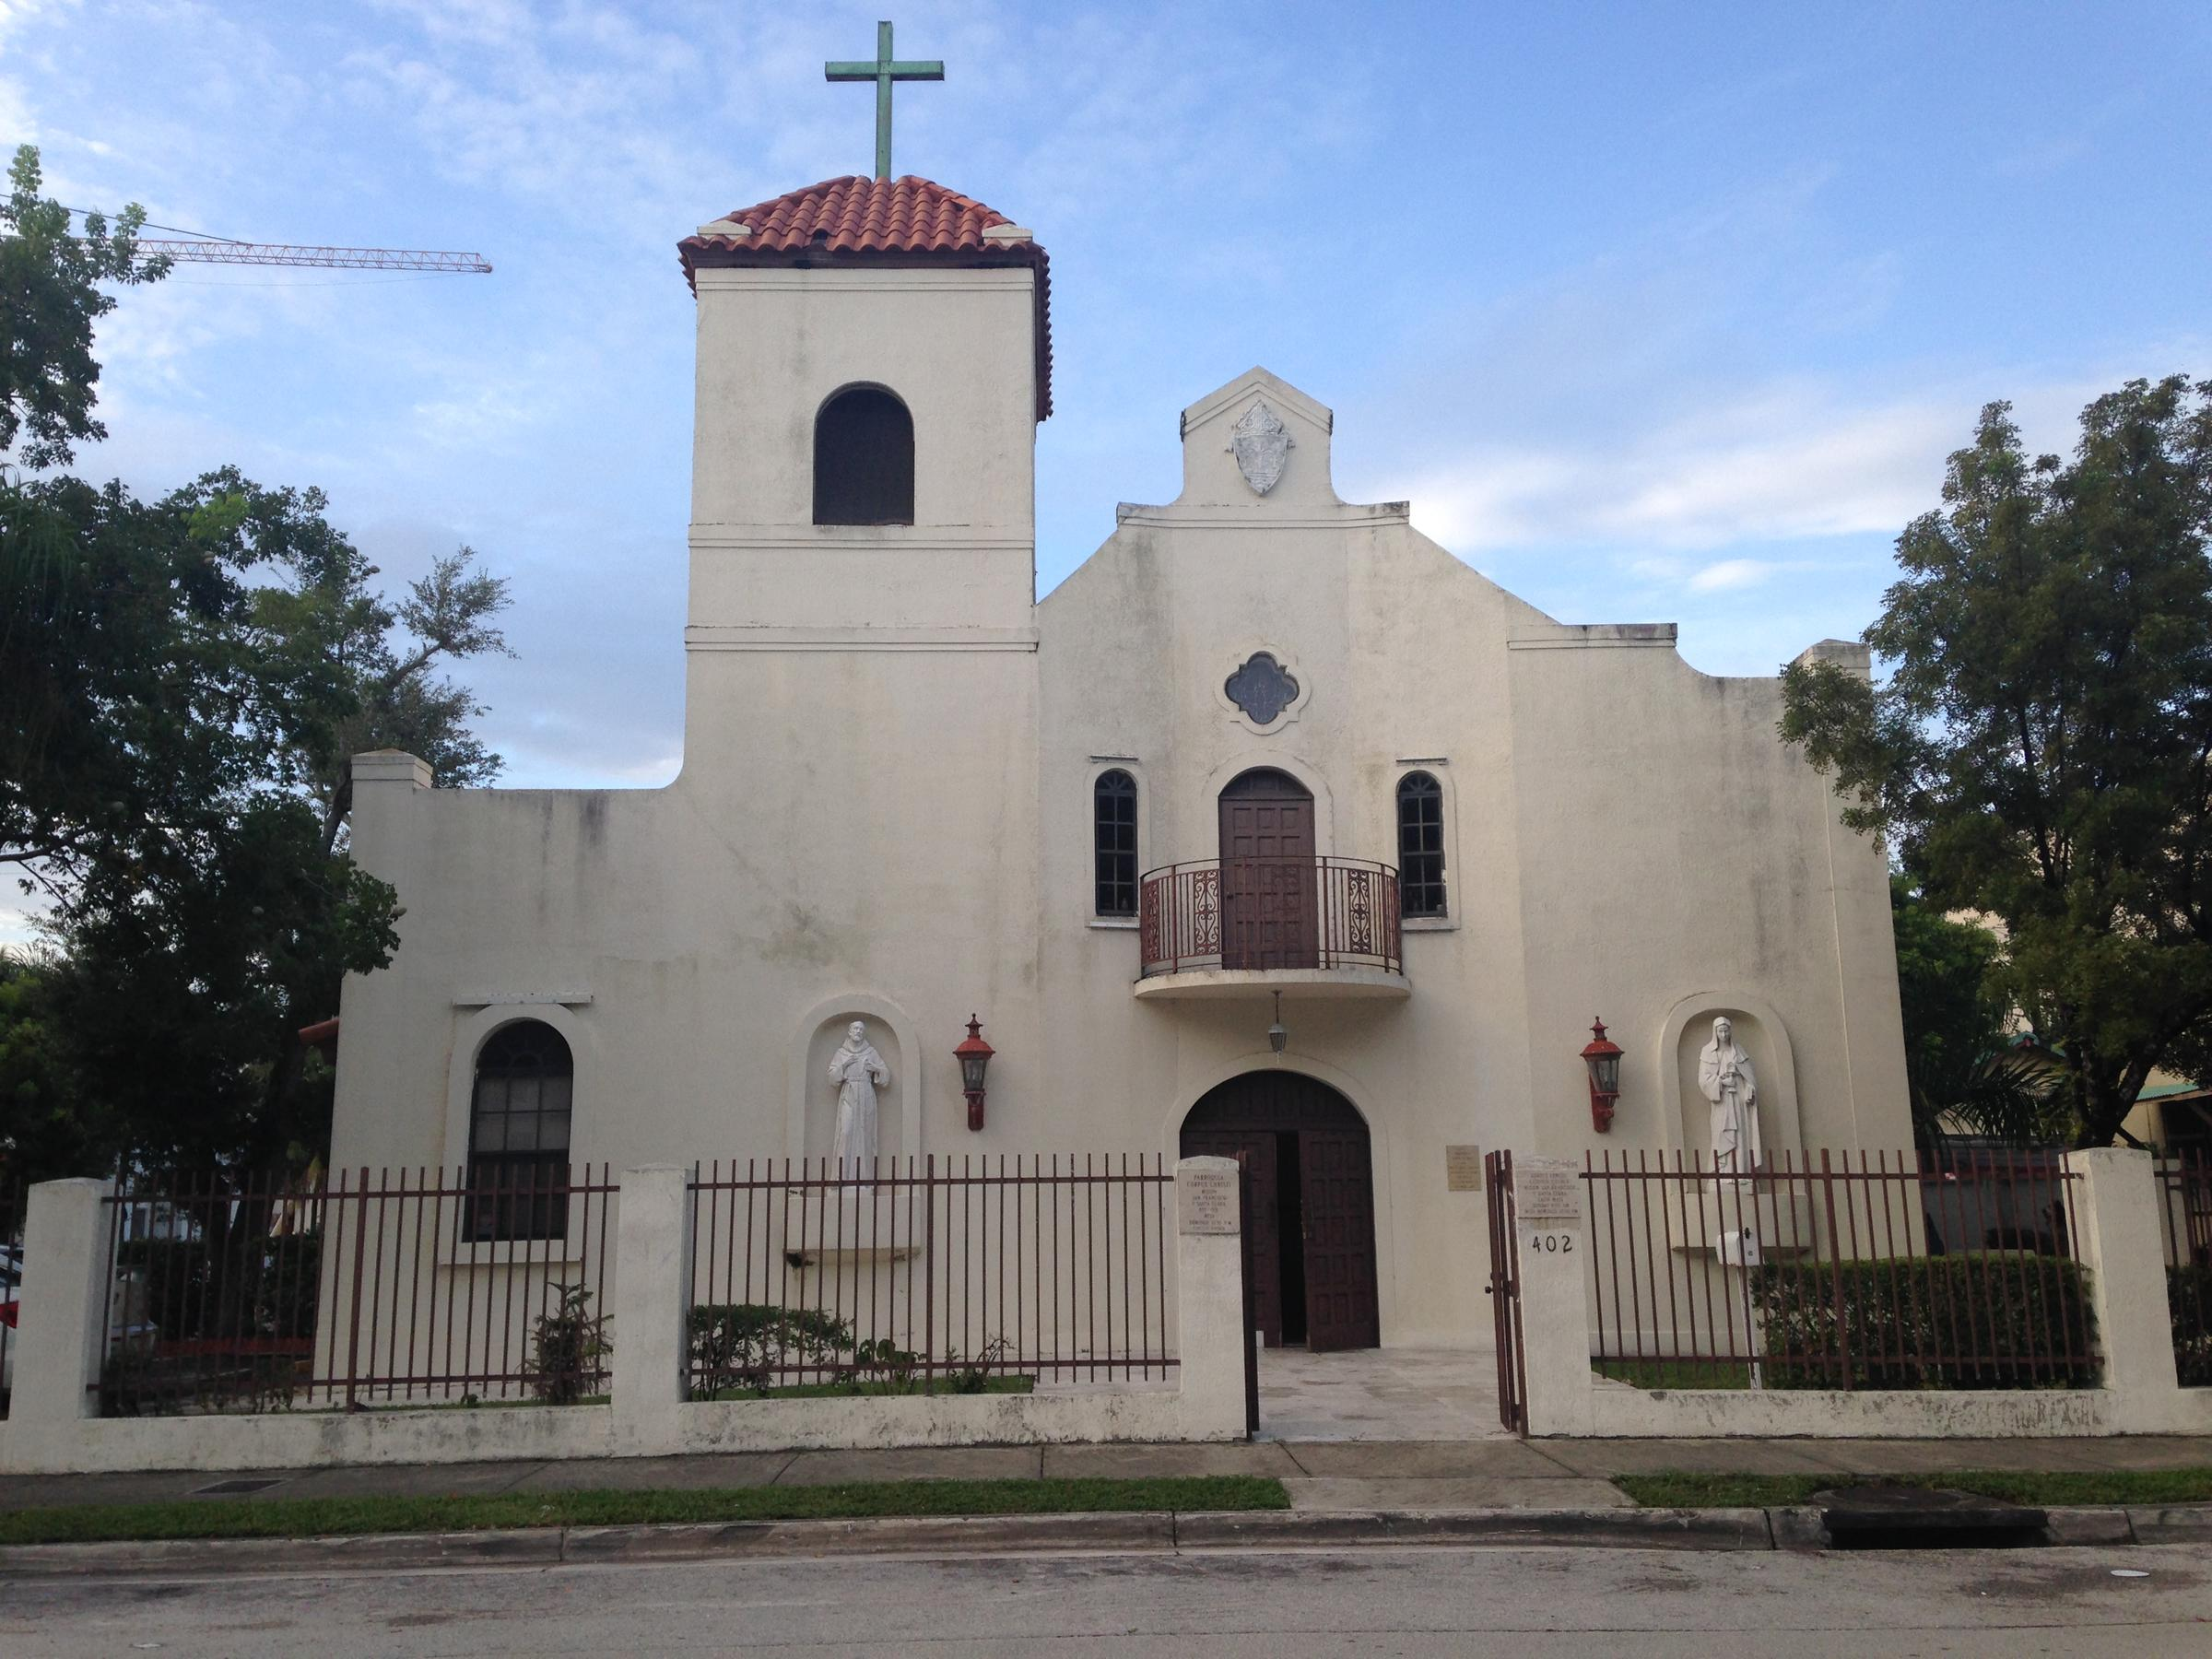 The Mission Of Saints Francis And Clare Holds Traditional Latin M Every Sunday At 402 Ne 29 St In Miami